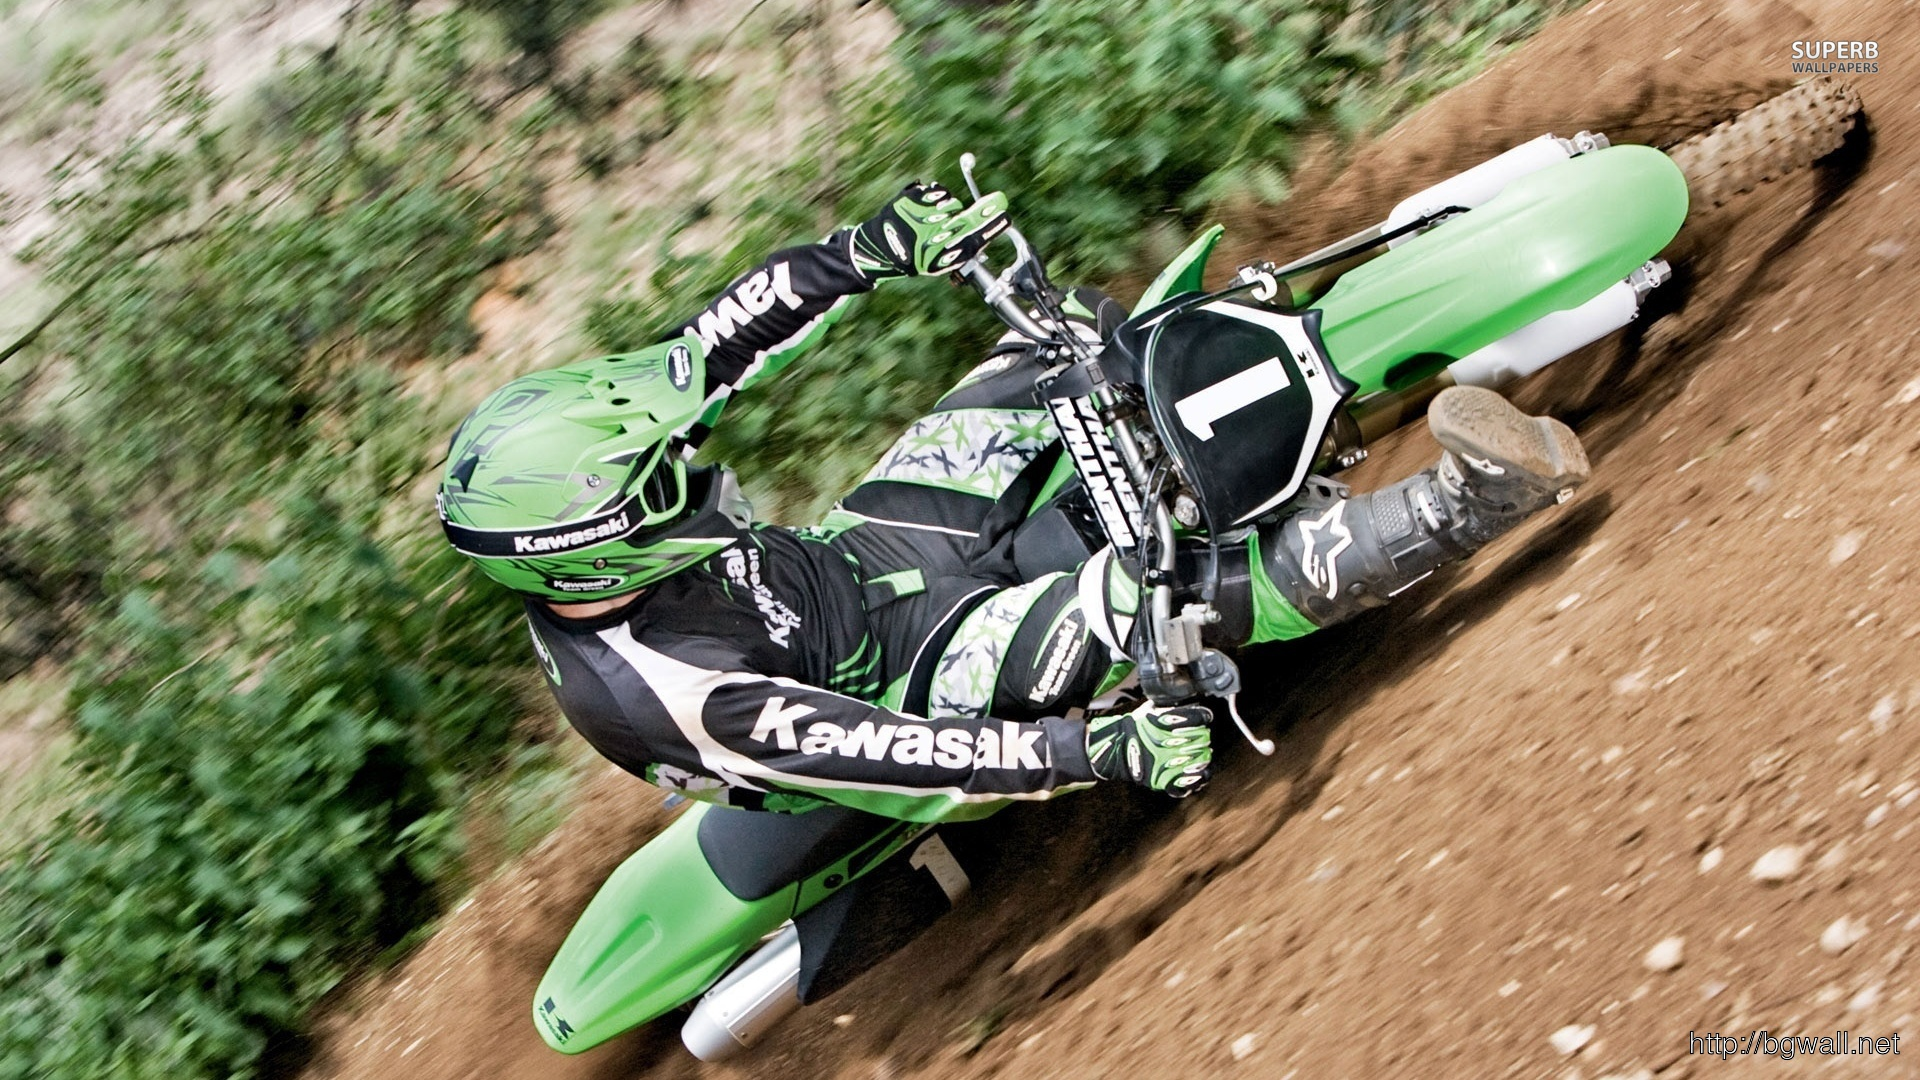 Kawasaki Kx250f Wallpaper Full Size